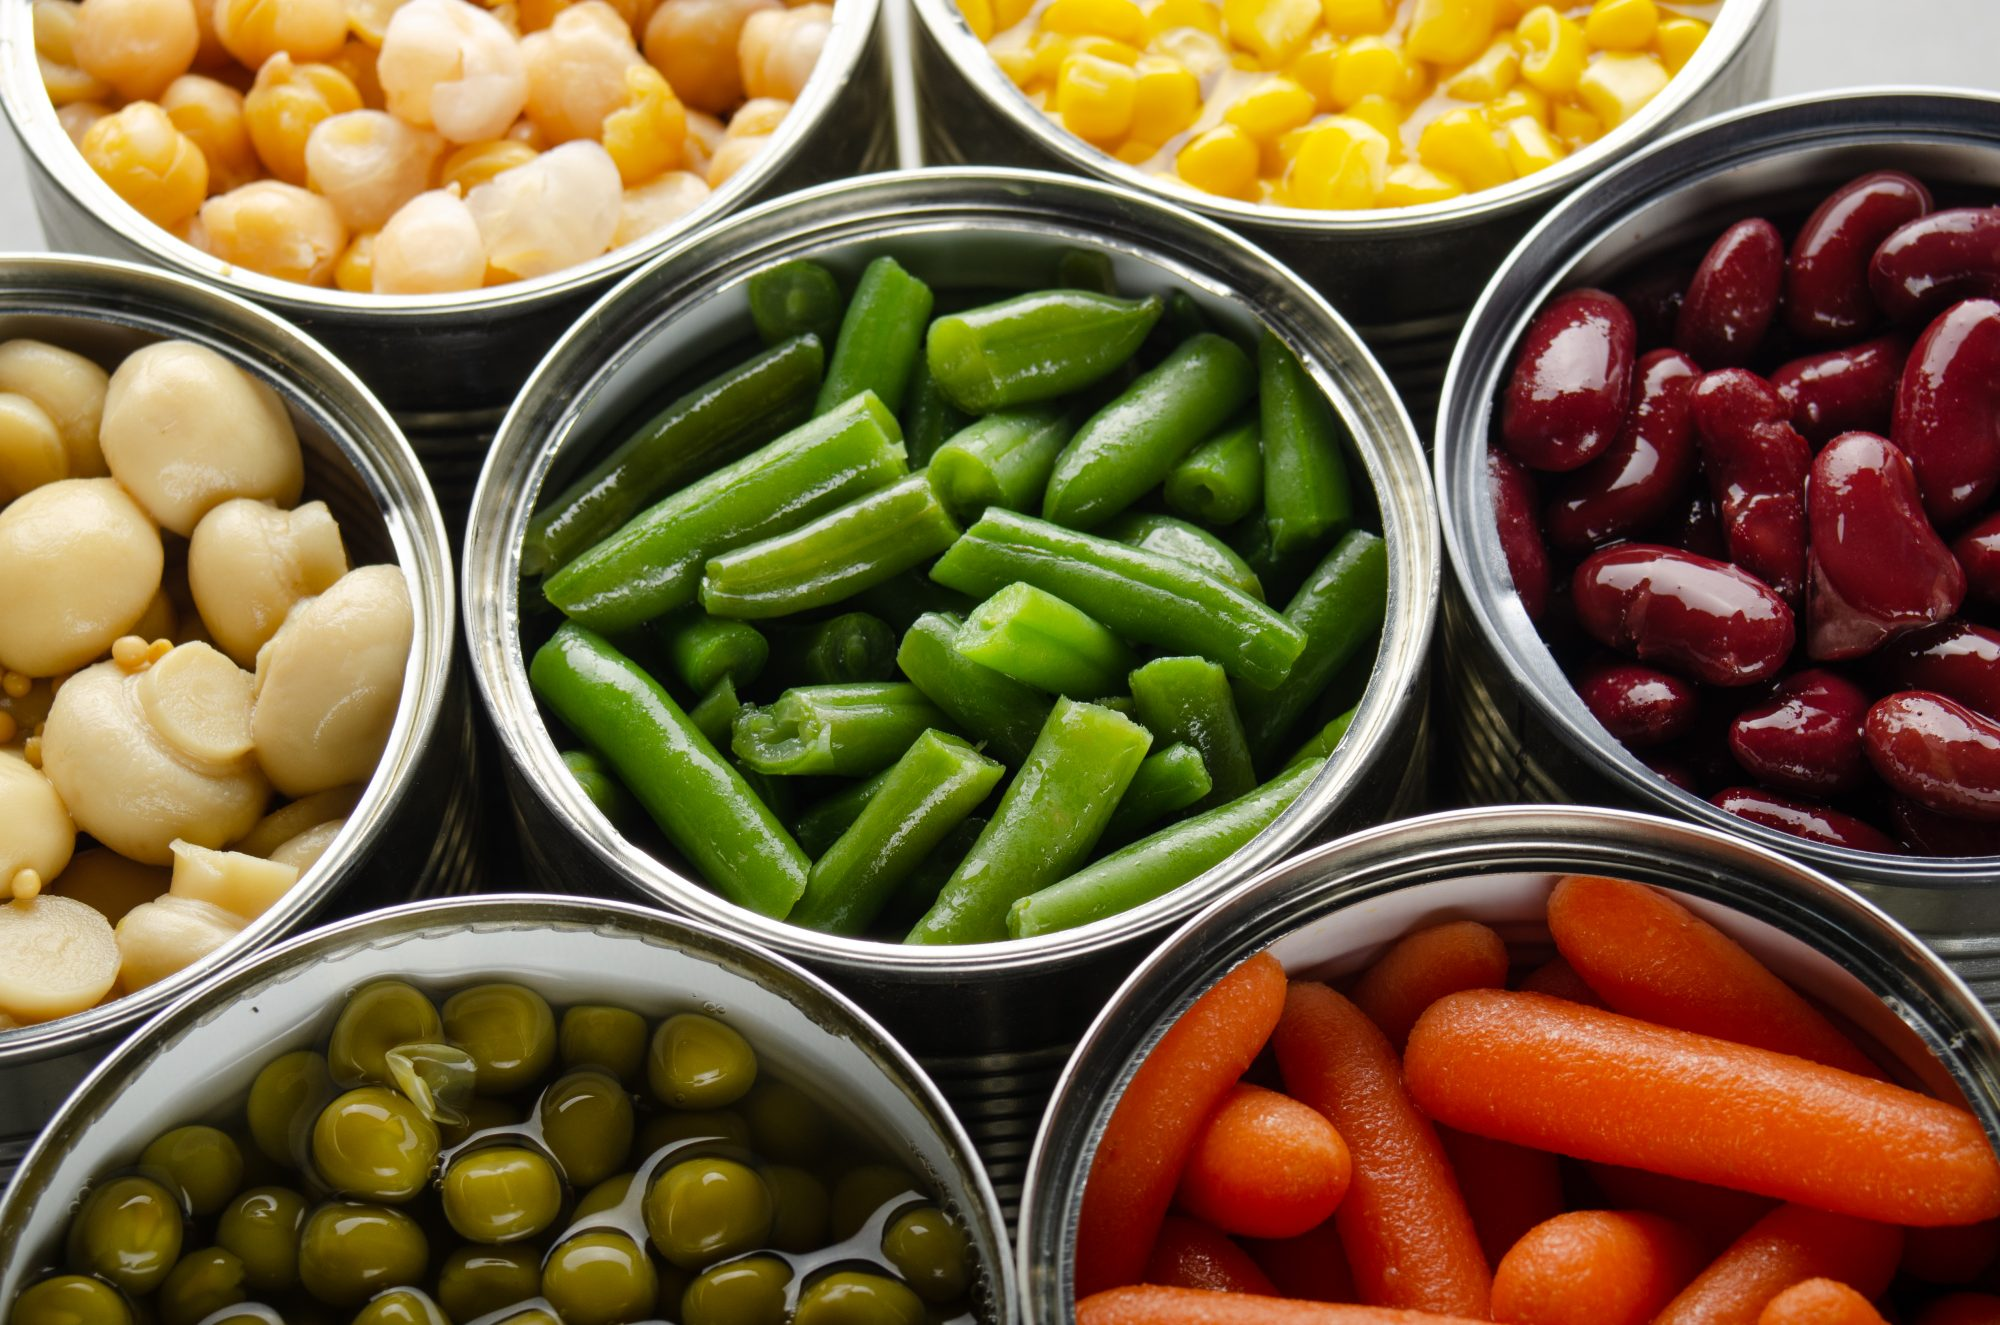 Canned vegetables in opened tin cans on kitchen table. Non-perishable long shelf life foods background